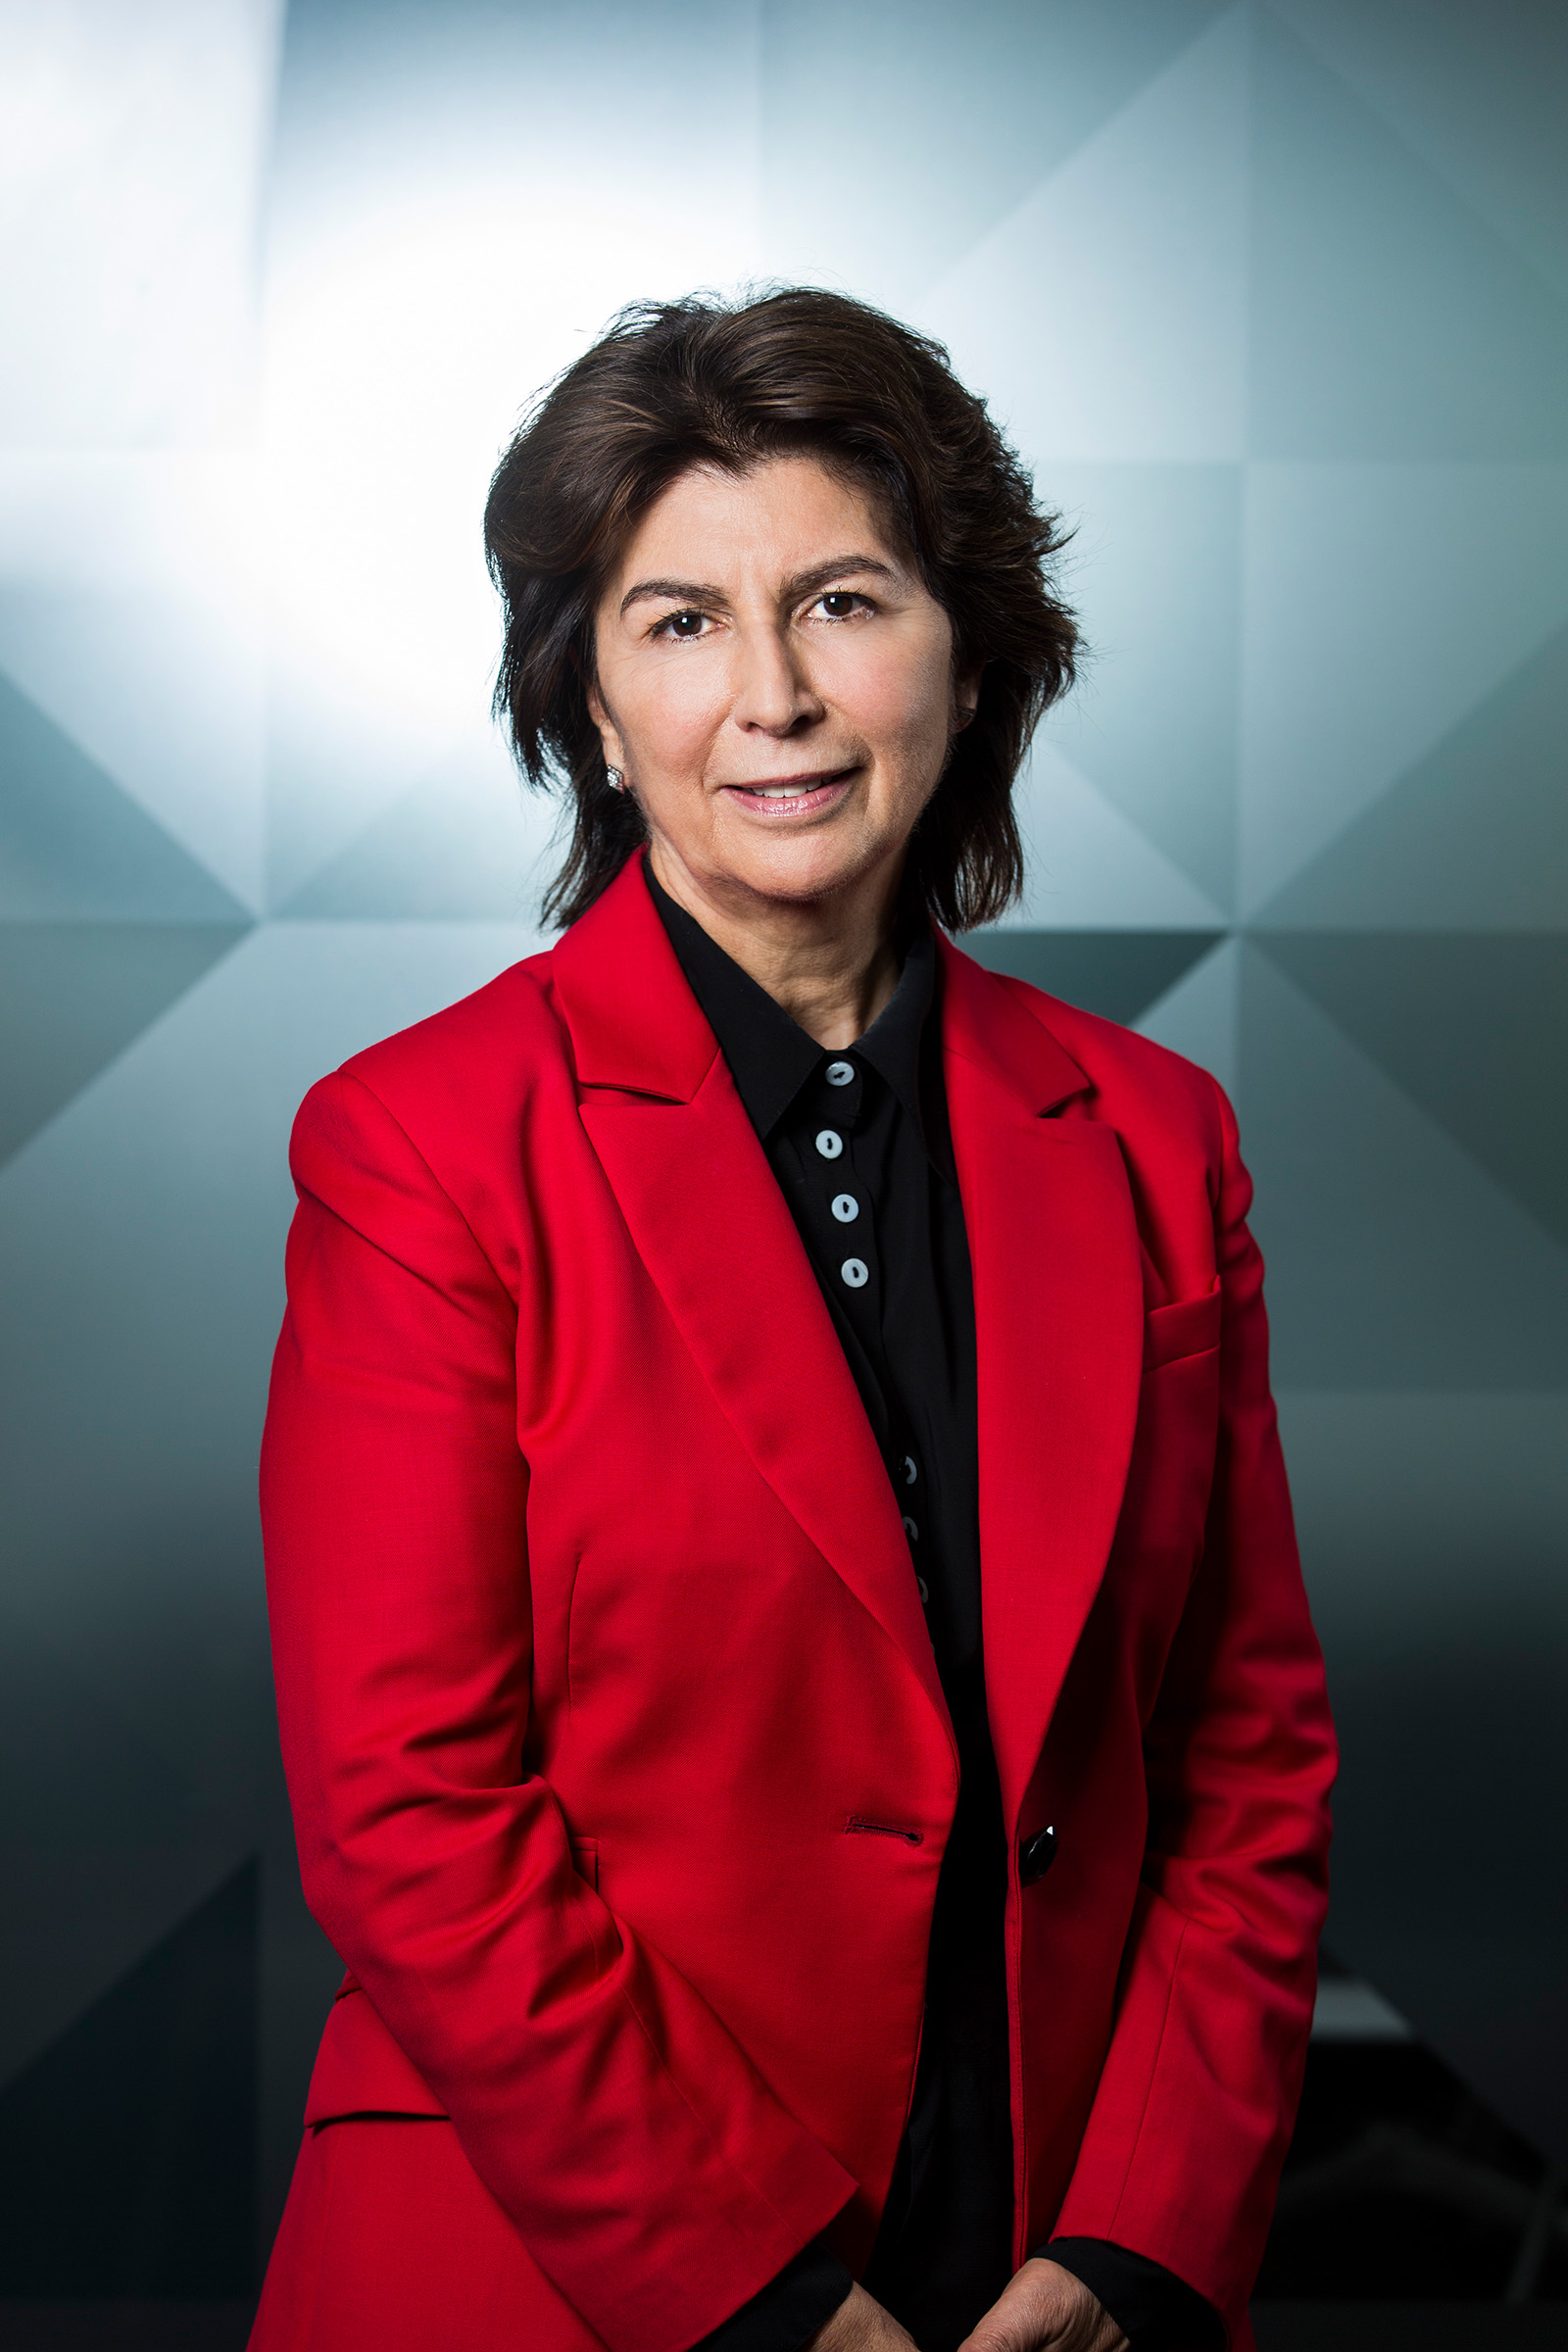 Corporate environmental photography of woman wearing black shirt red jacket against a grey triangle tessellated background